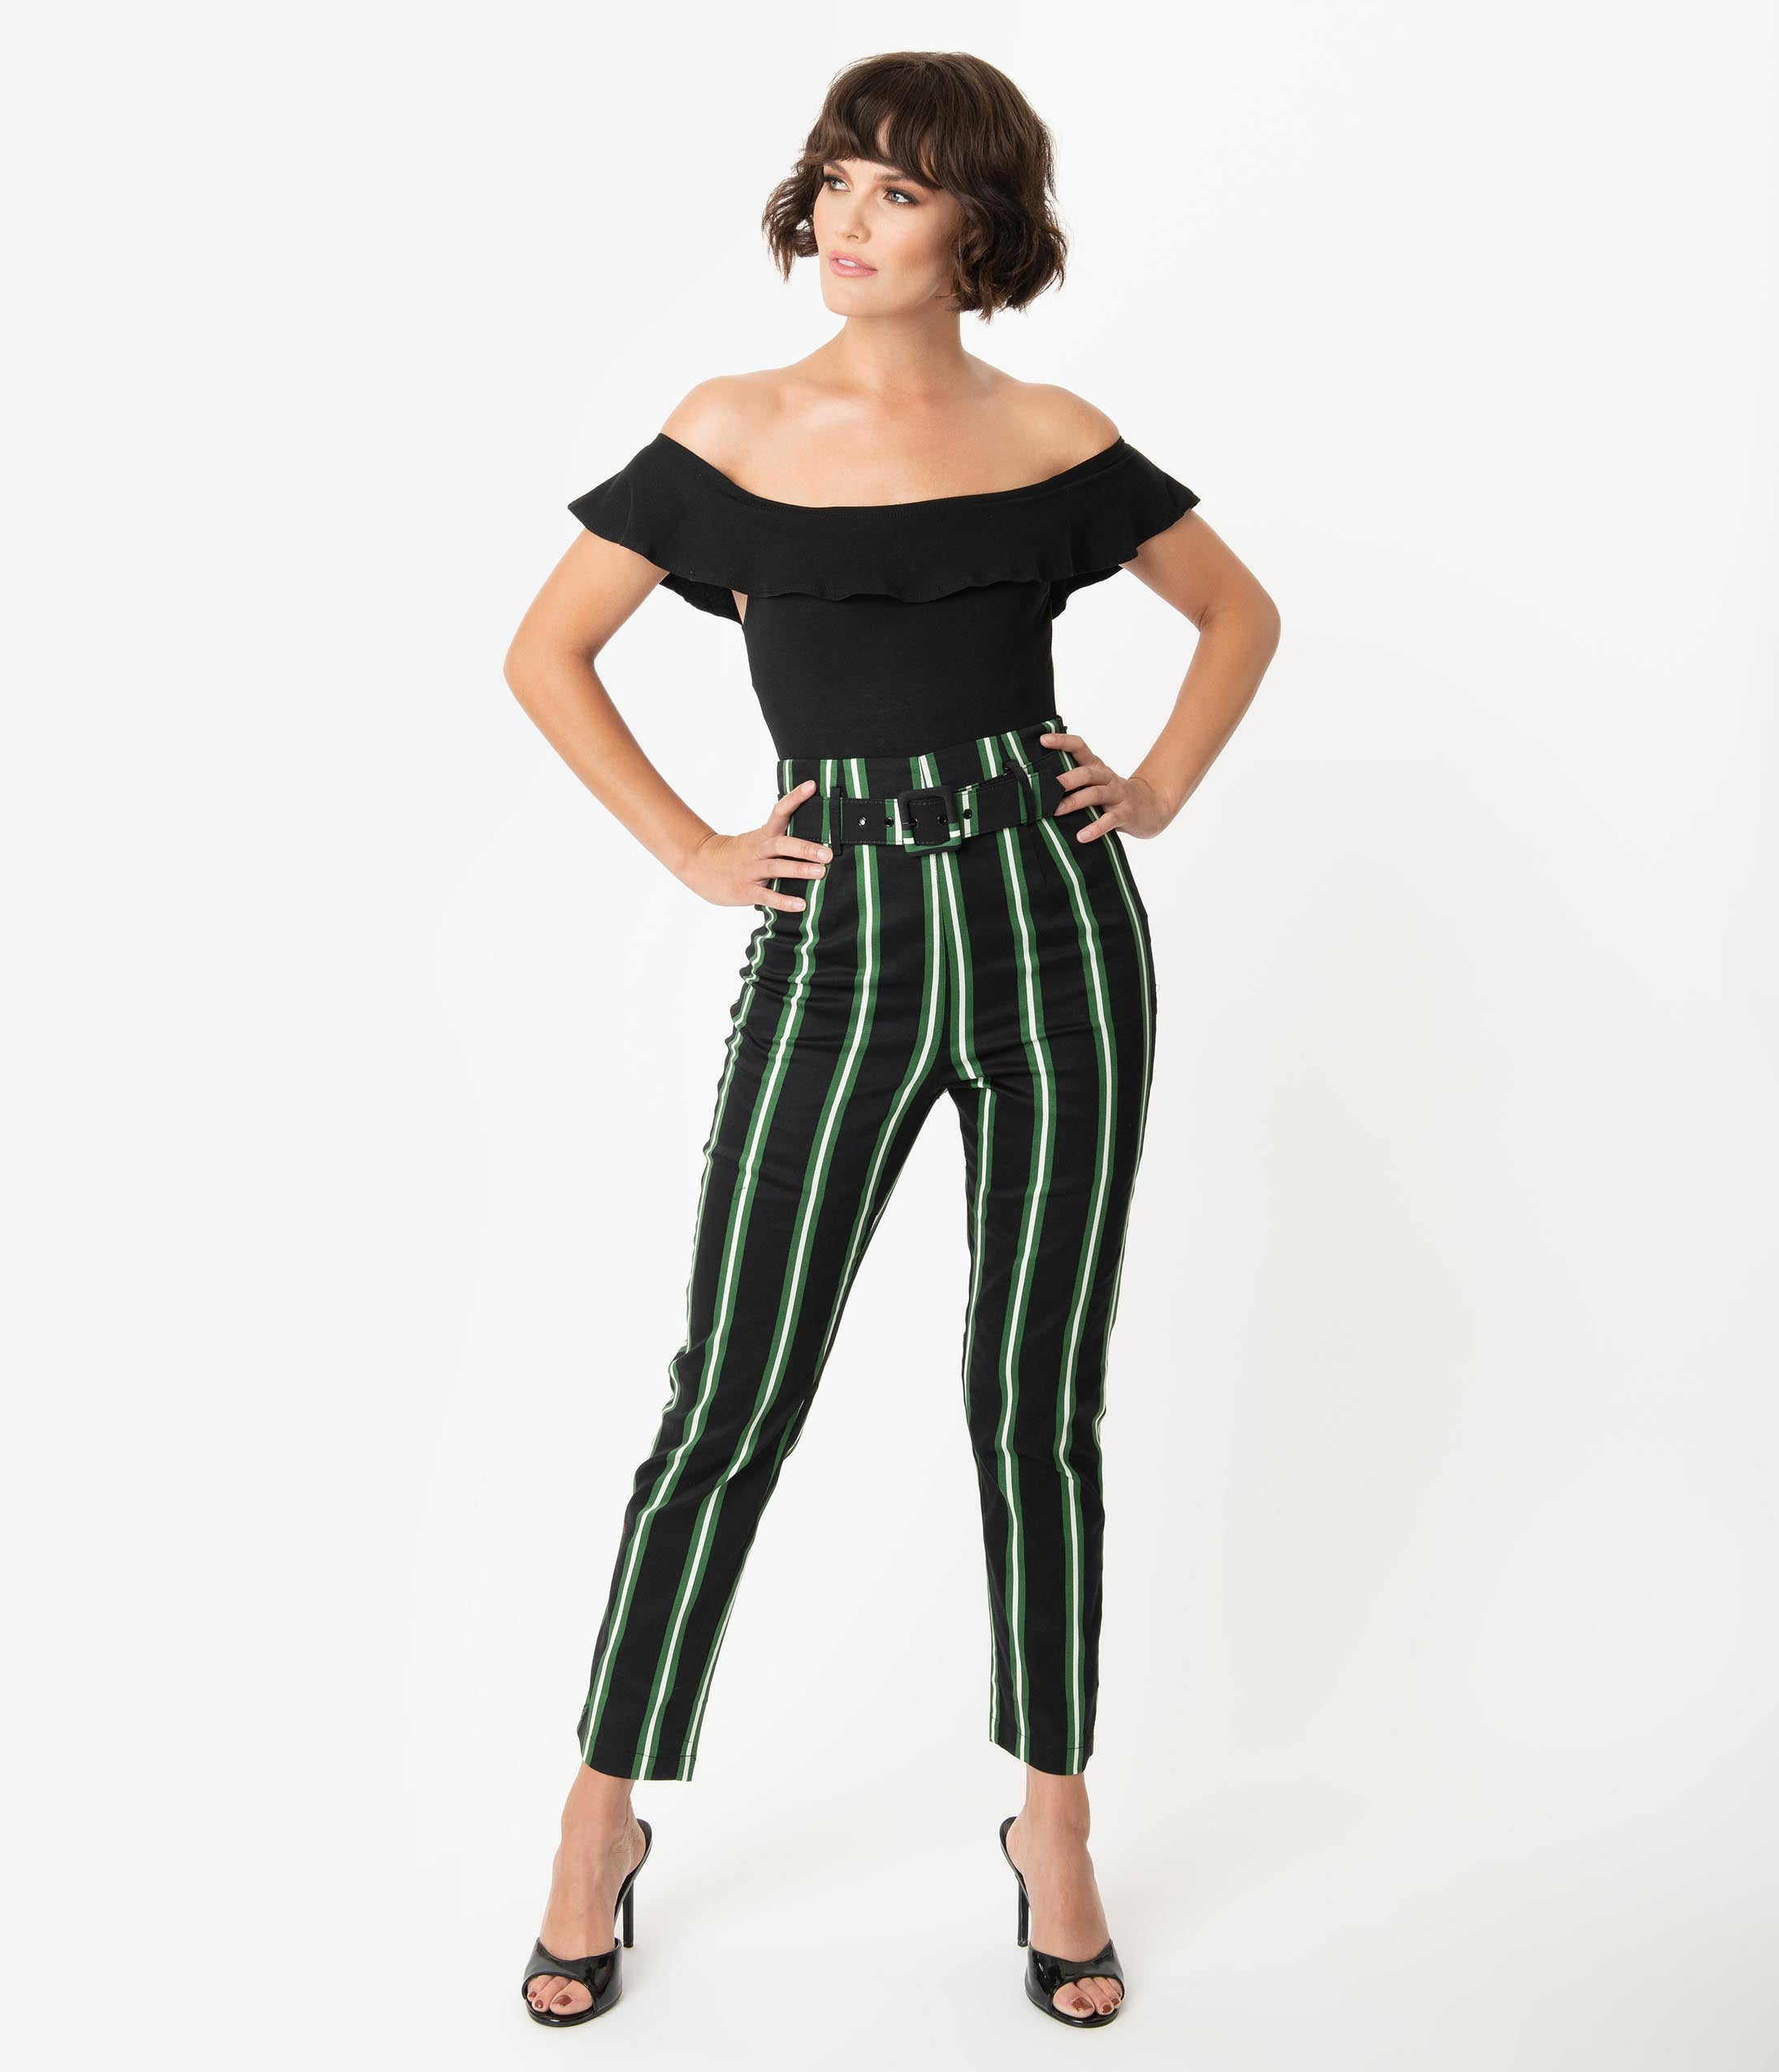 60s – 70s Pants, Jeans, Hippie, Bell Bottoms, Jumpsuits Collectif Black  Green Witch Stripe Thea High Waist Pants $58.00 AT vintagedancer.com